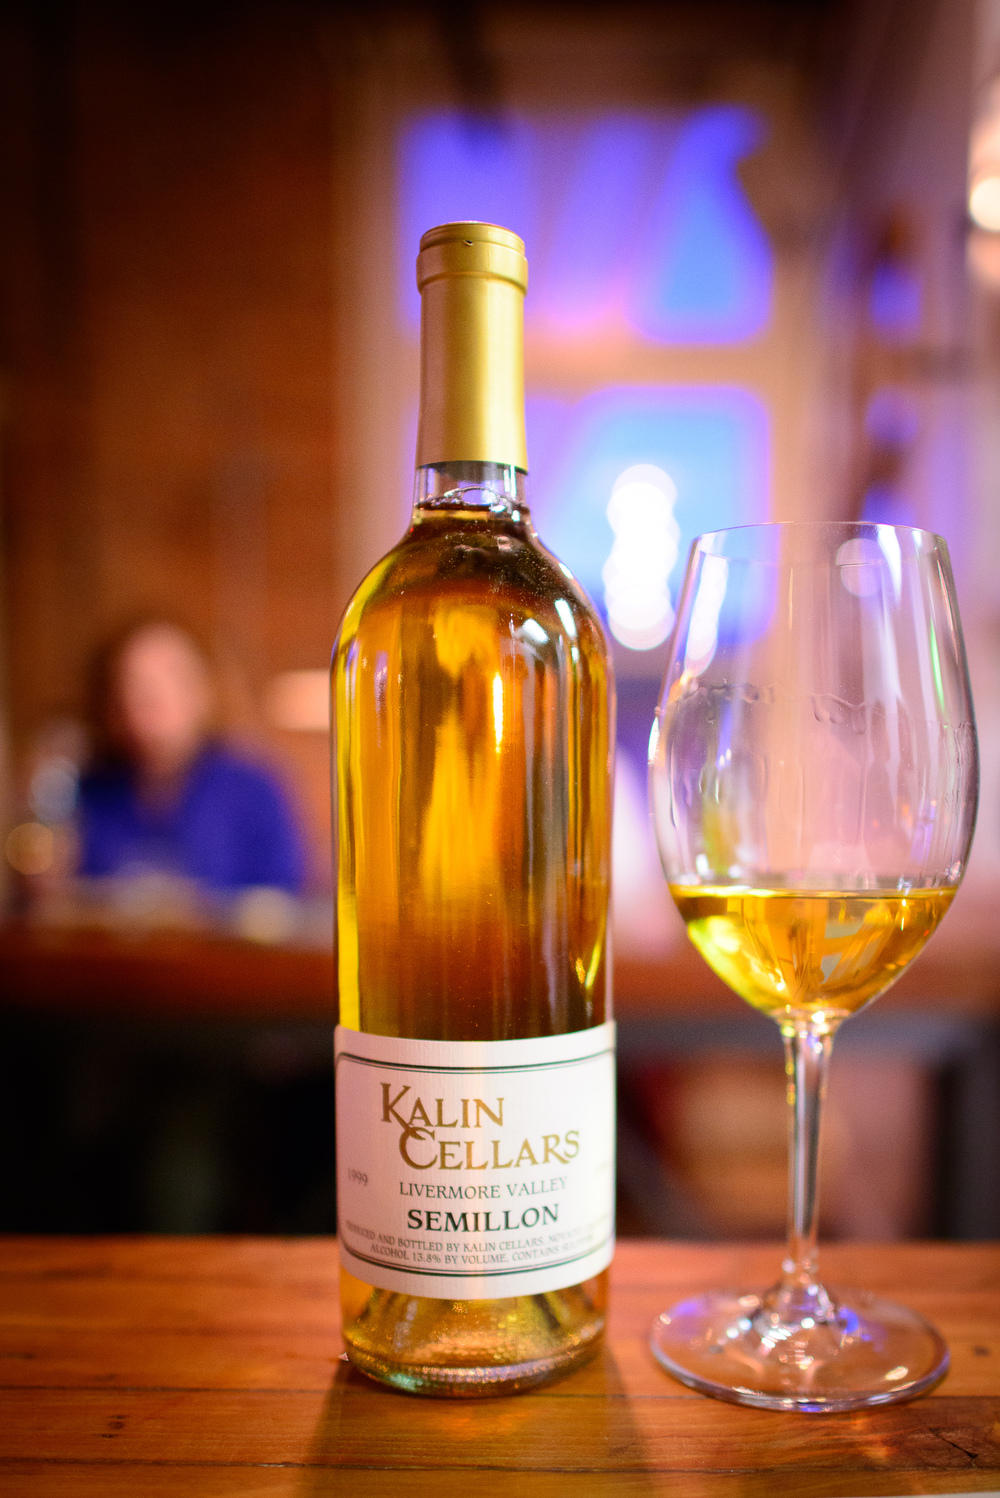 Kalin Cellars Semillon, 1999